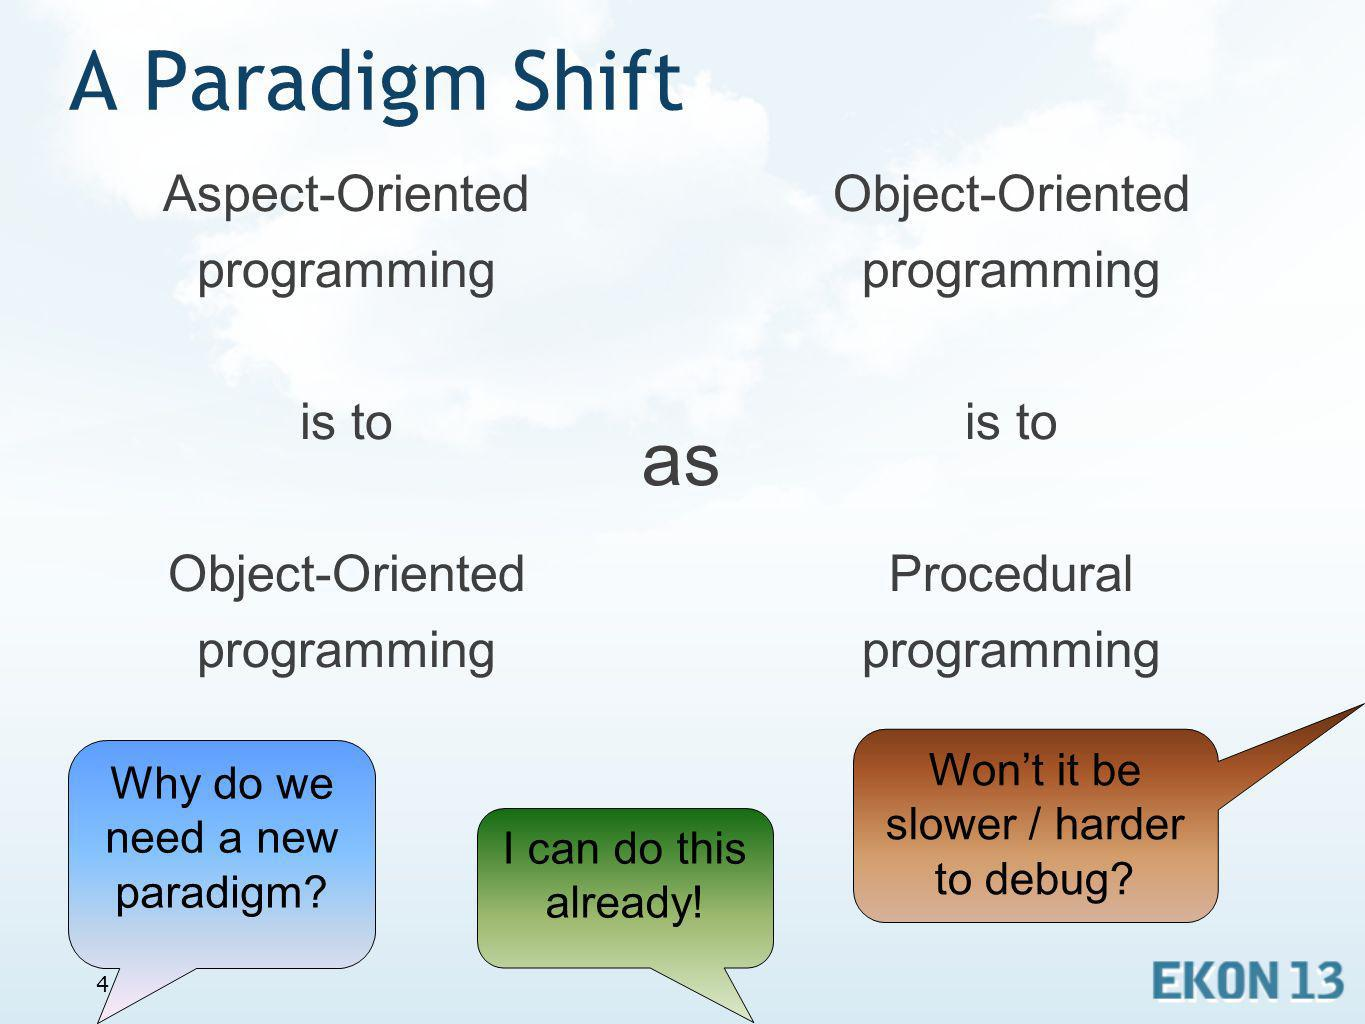 A Paradigm ShiftAspect-Oriented programming is to Object-Oriented programming.